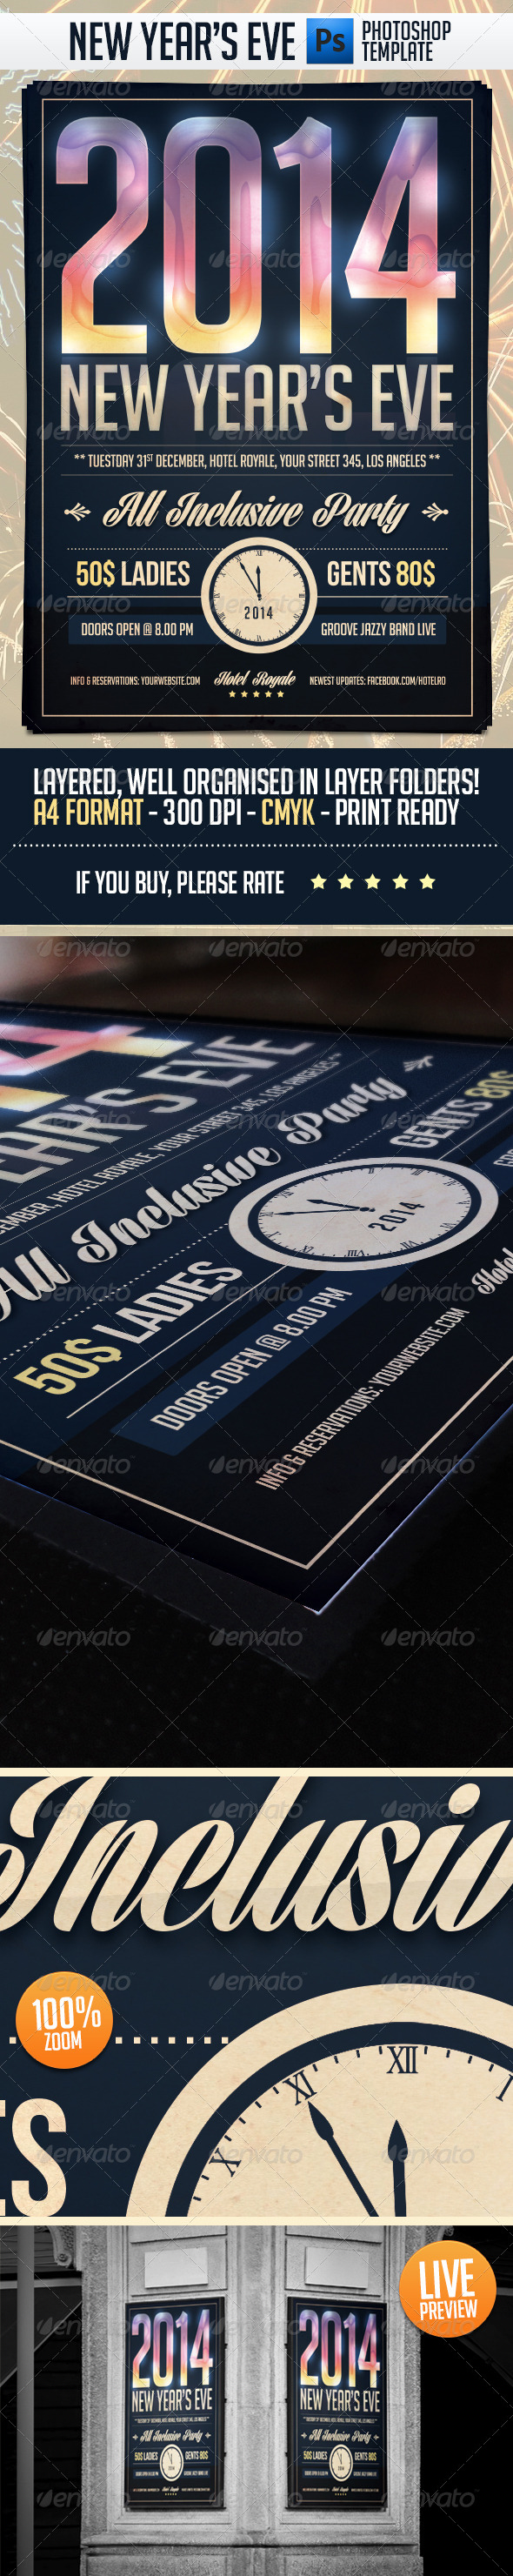 GraphicRiver New Year Eve Party Flyer Template 6397666